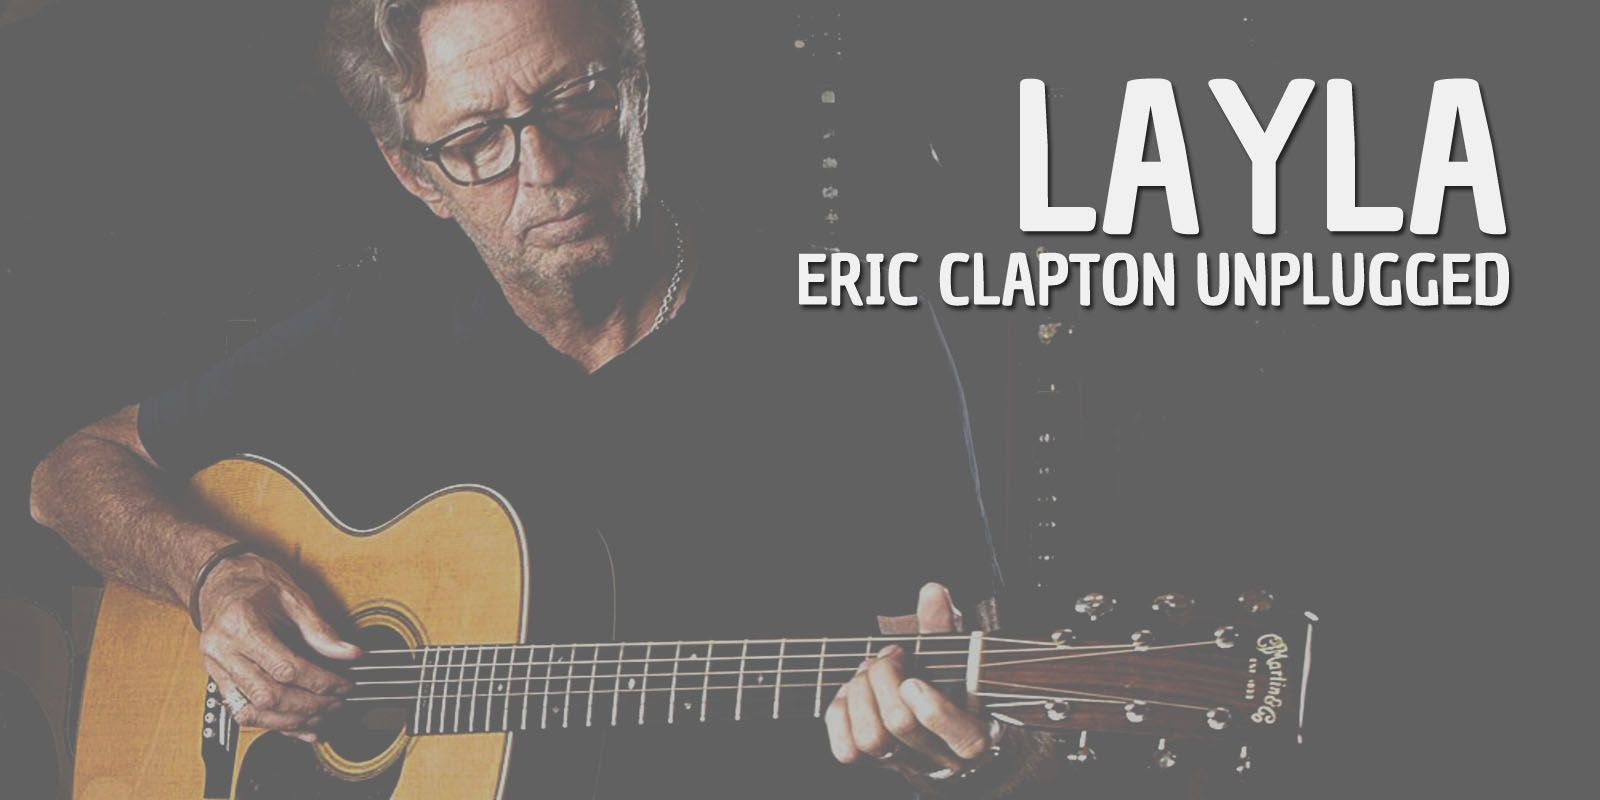 Burninguitar show you how to play Layla by Eric Clapton in unplugged version. A great classic of Acoustic Guitar. Music Score in Pdf and Guitar Pro included